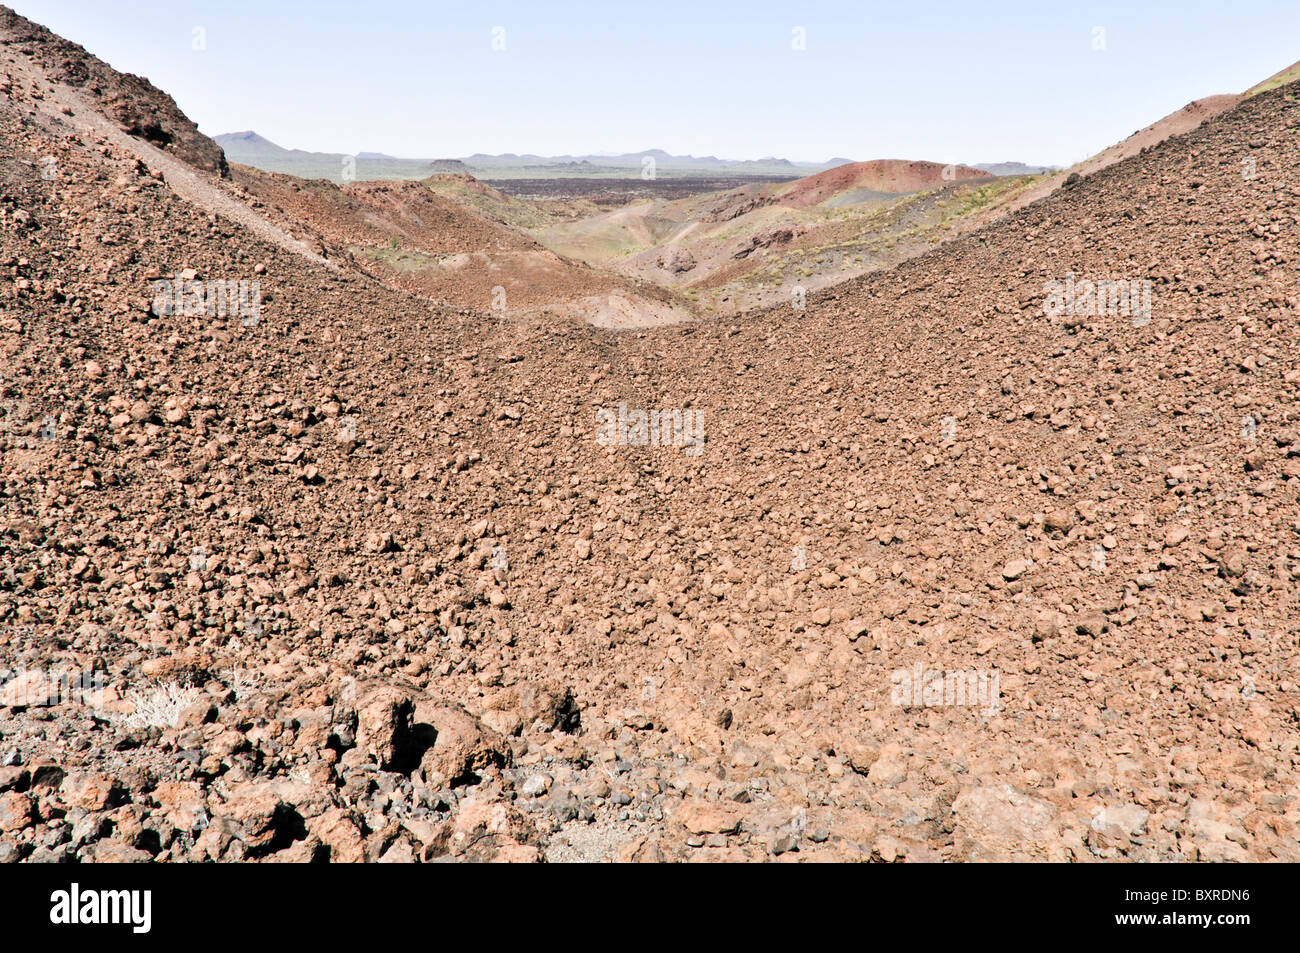 Large field of volcanic bombs, ejected magma which cooled while falling, El Pinacate Biosphere Reserve, Sonora, - Stock Image